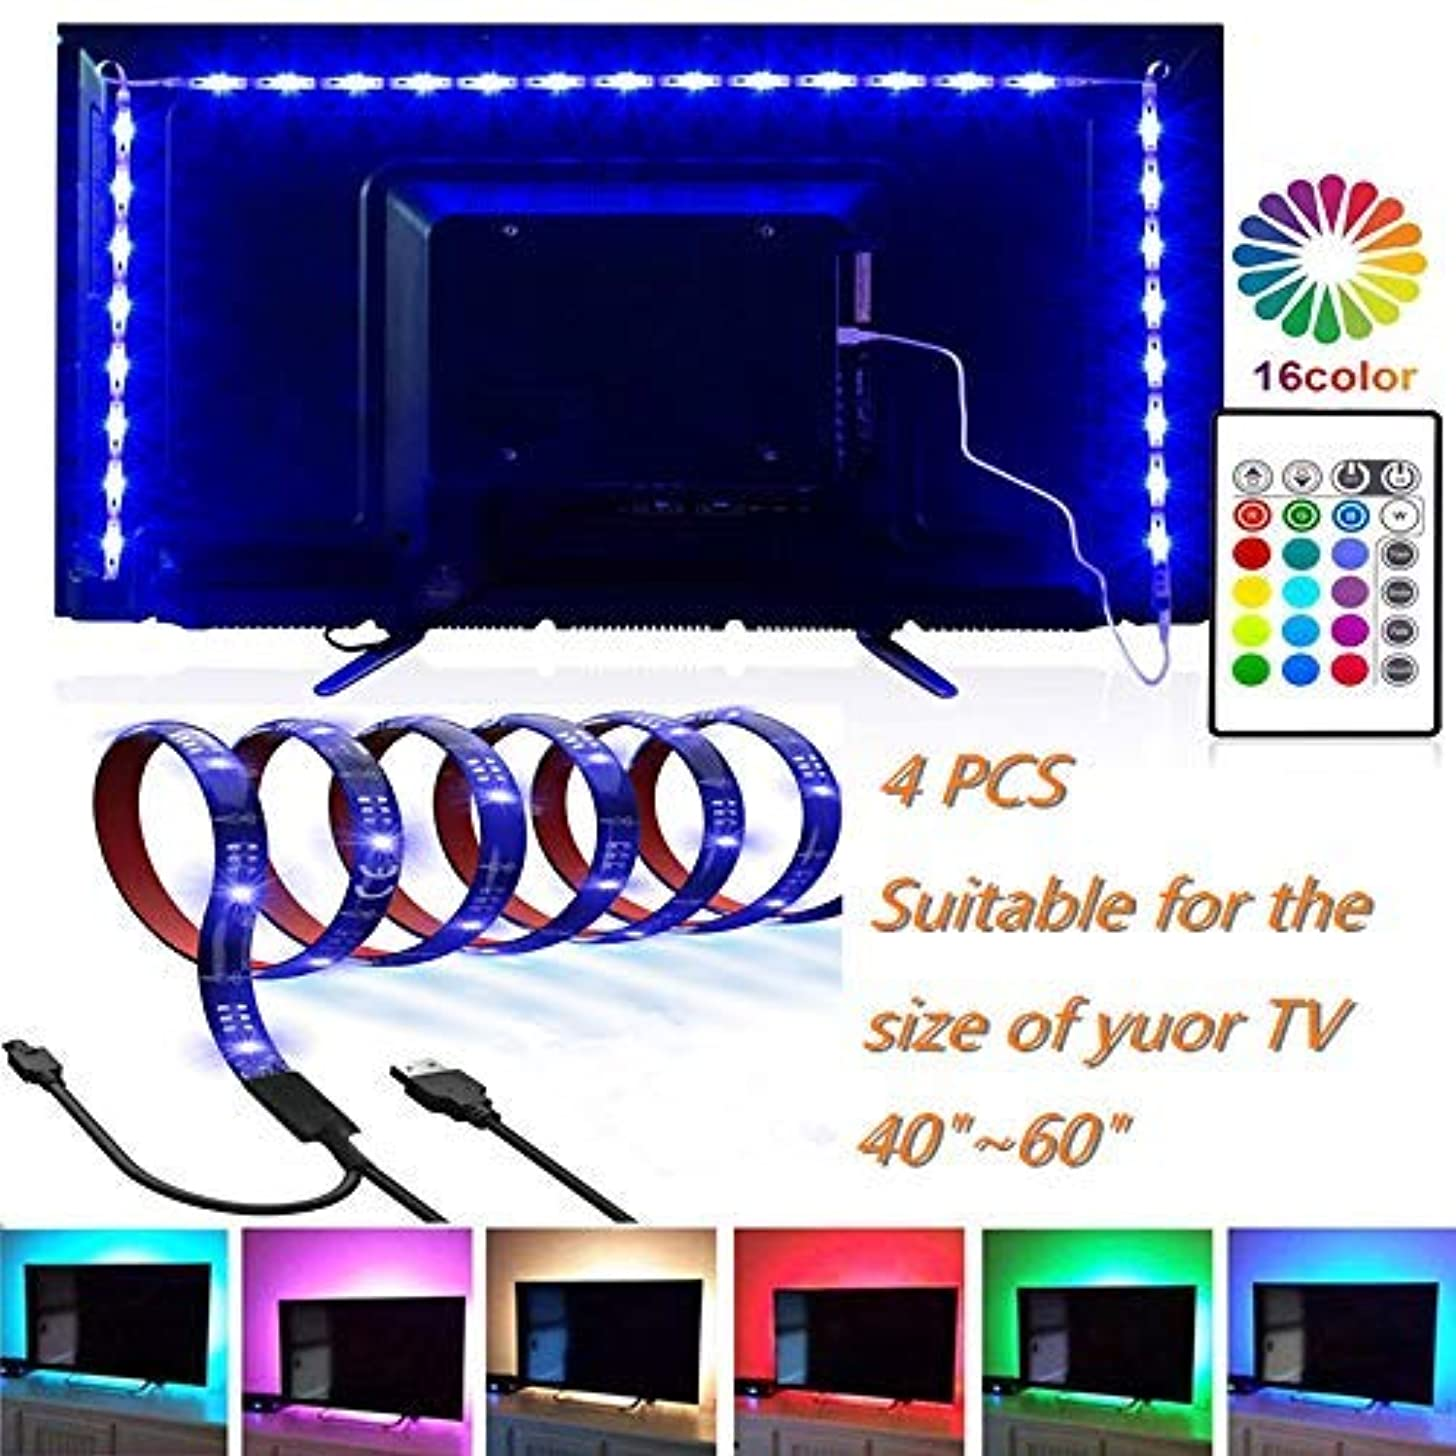 CINLITEK LED Strip Lights, LED TV Backlight 6.56ft for 40-60in Television USB TV Backlight Kit with Remote, 16 Color 5050, HDTV Bias Lamp, Waterproof Bias Lighting Led Light Strip for TV Desktop PC